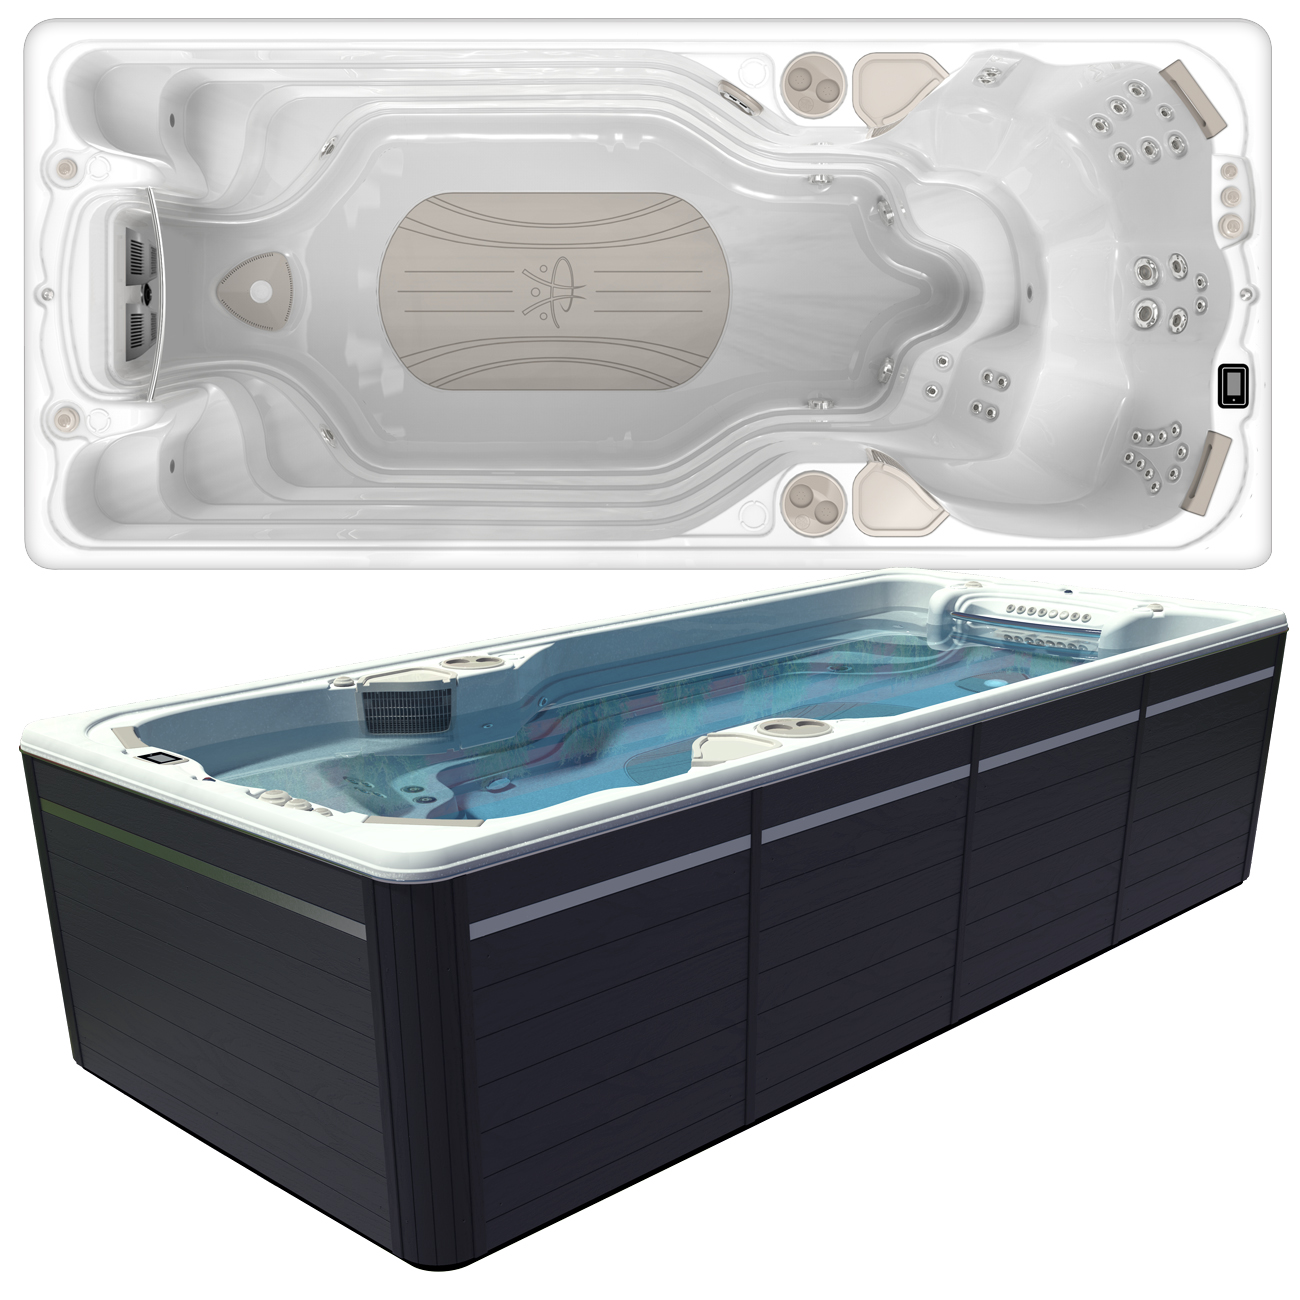 Hydropool AquaSport 17AX Swim Spa